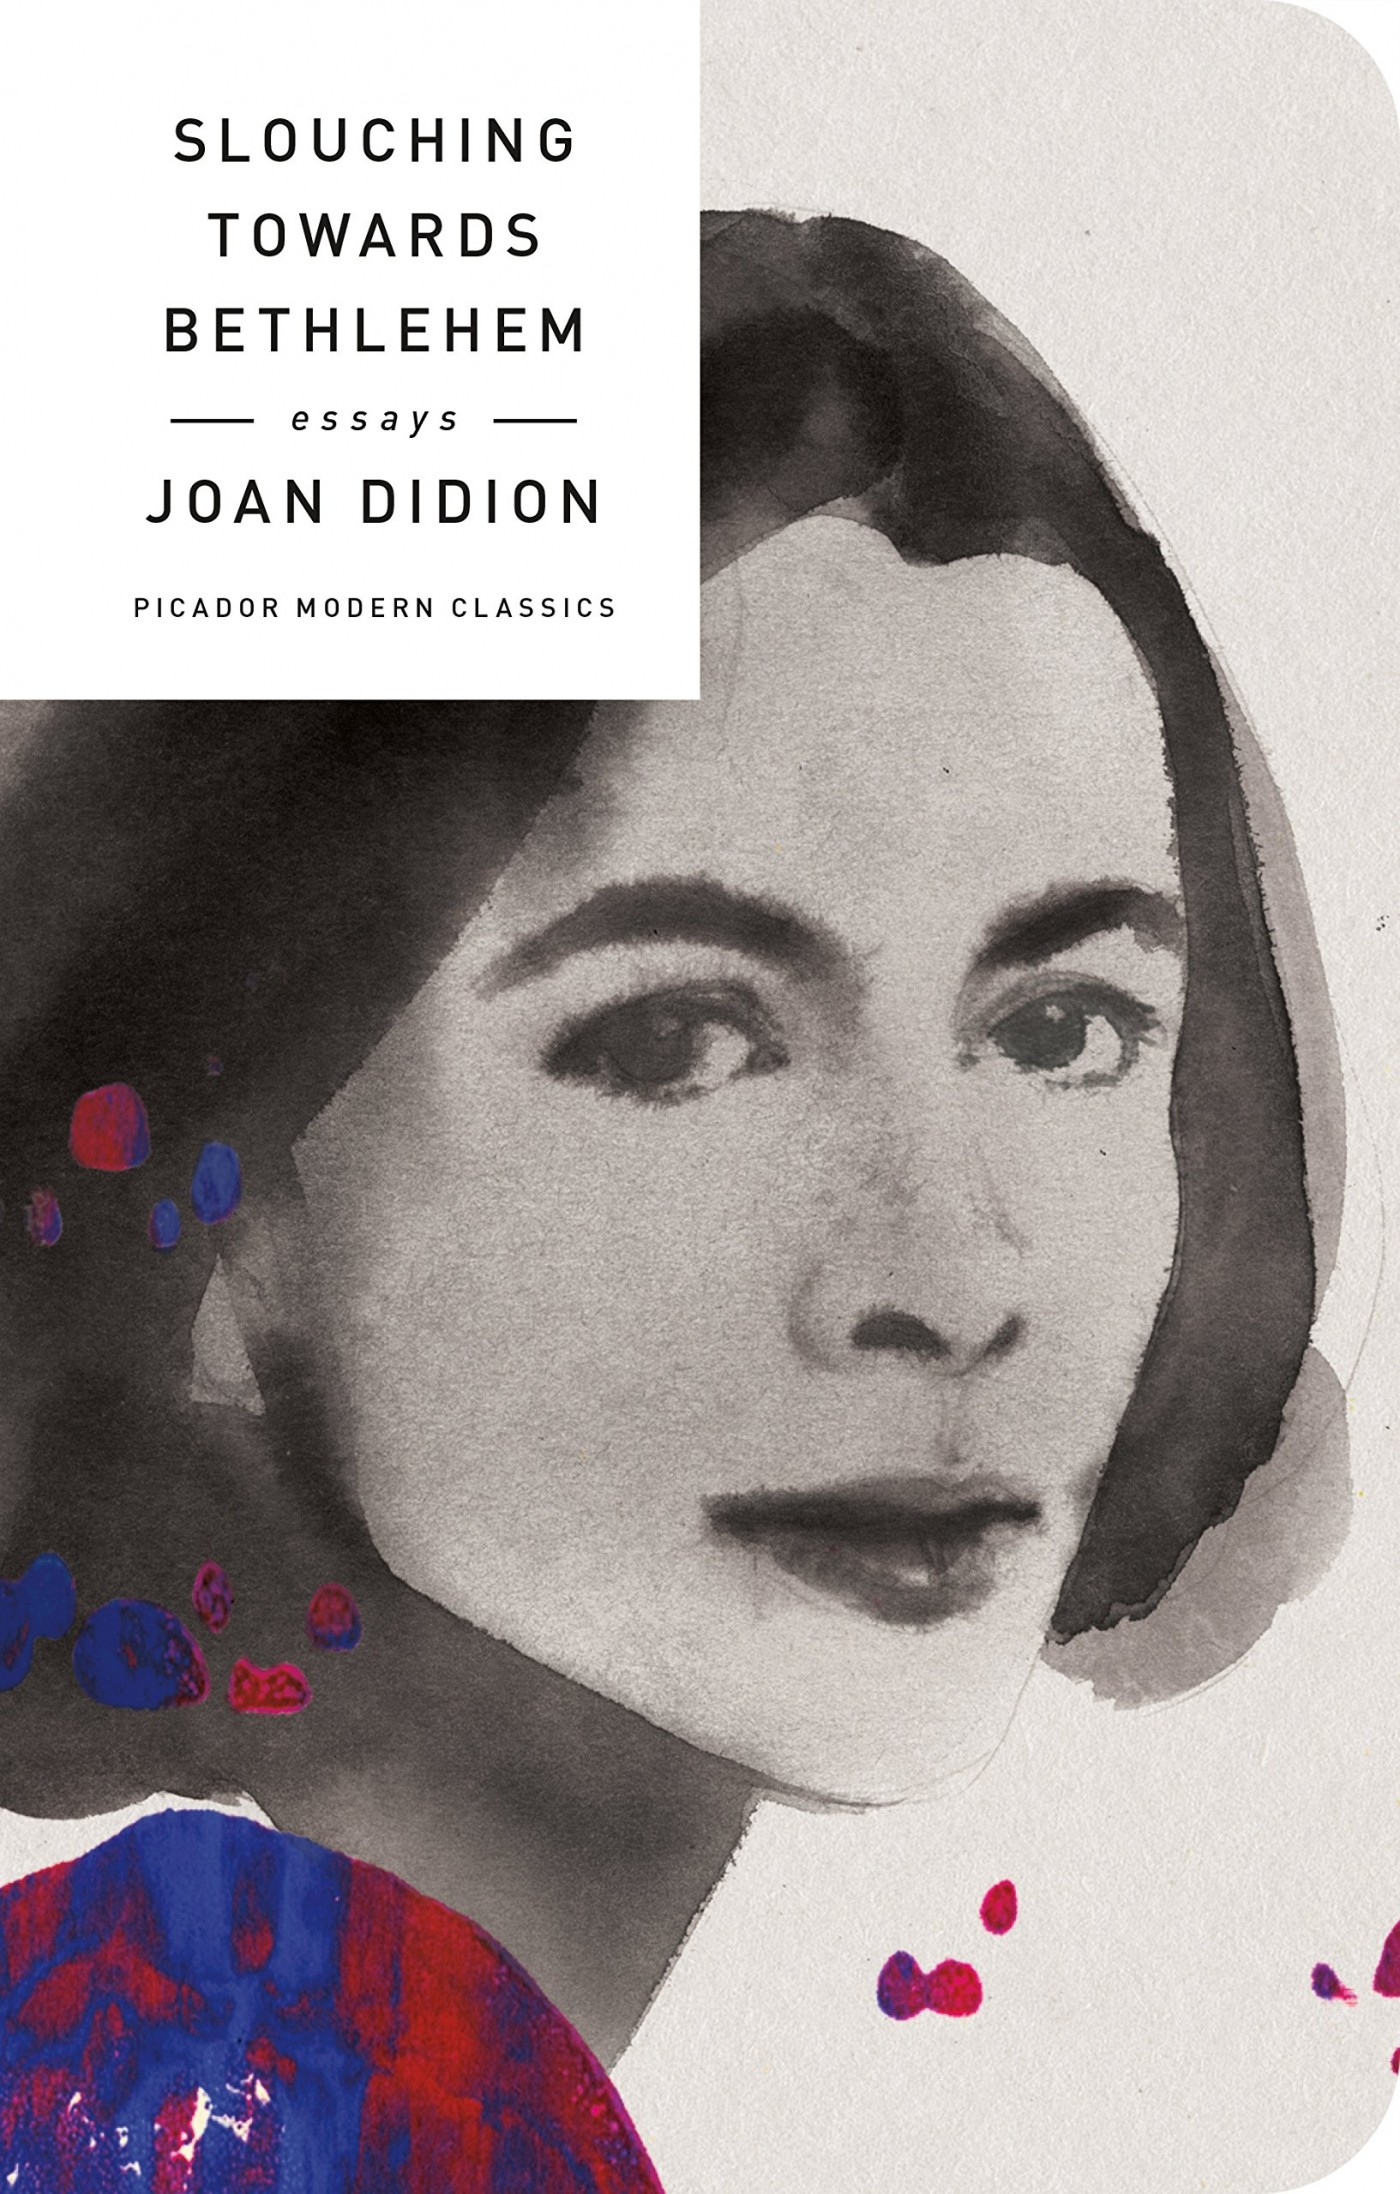 023 Slouching Towards Bethlehem Essay Example Joan Didion Singular Essays Collections On Santa Ana Winds Amazon 1400